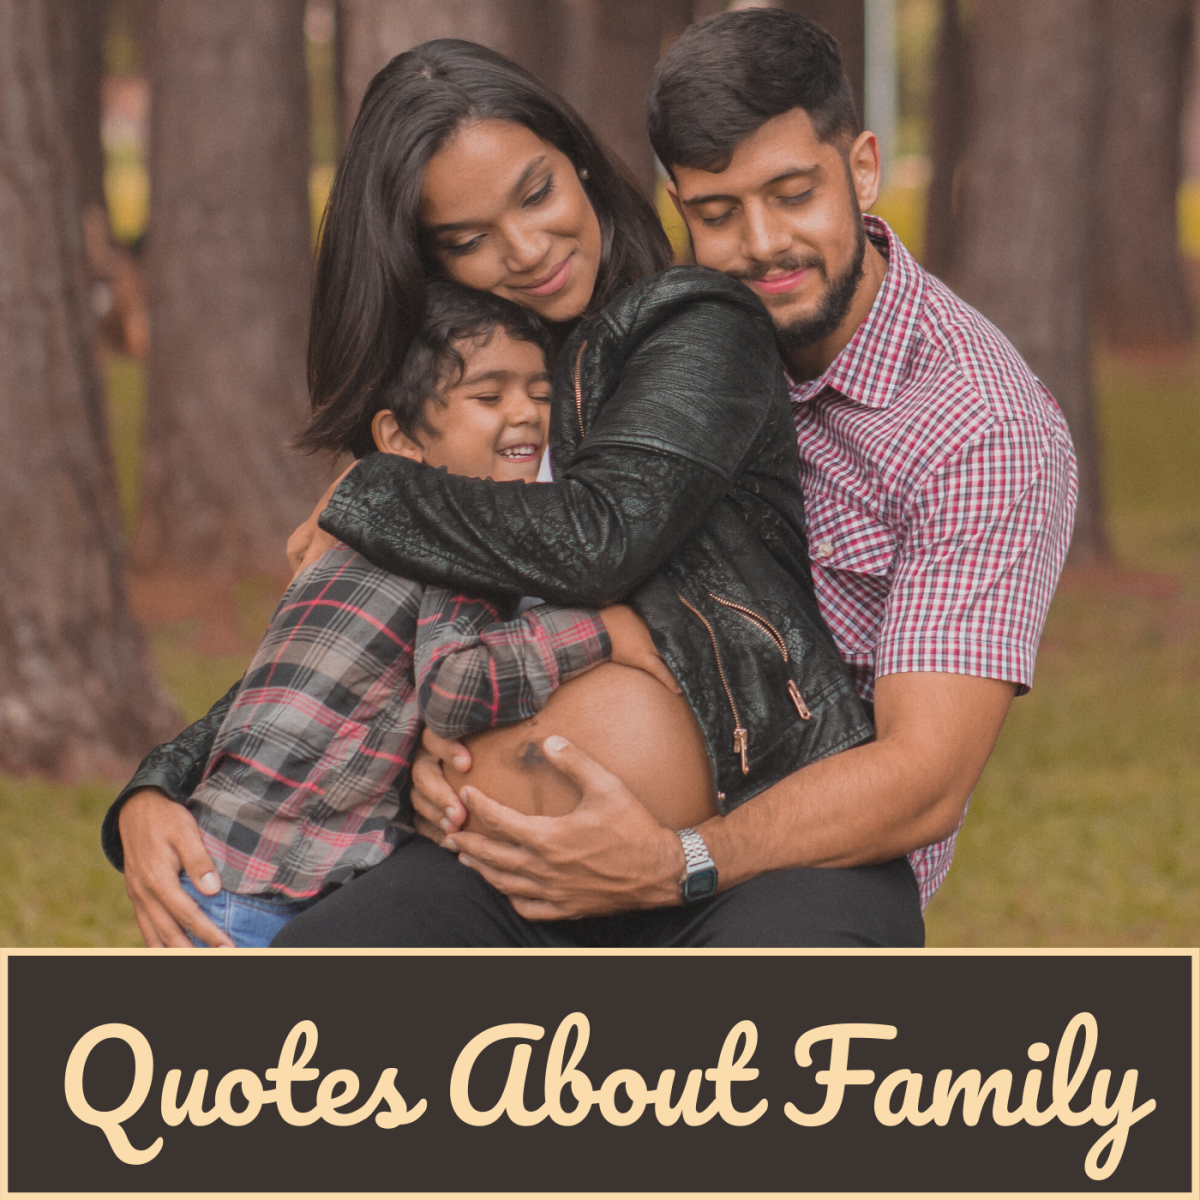 Heartwarming Quotes and Sayings About Family